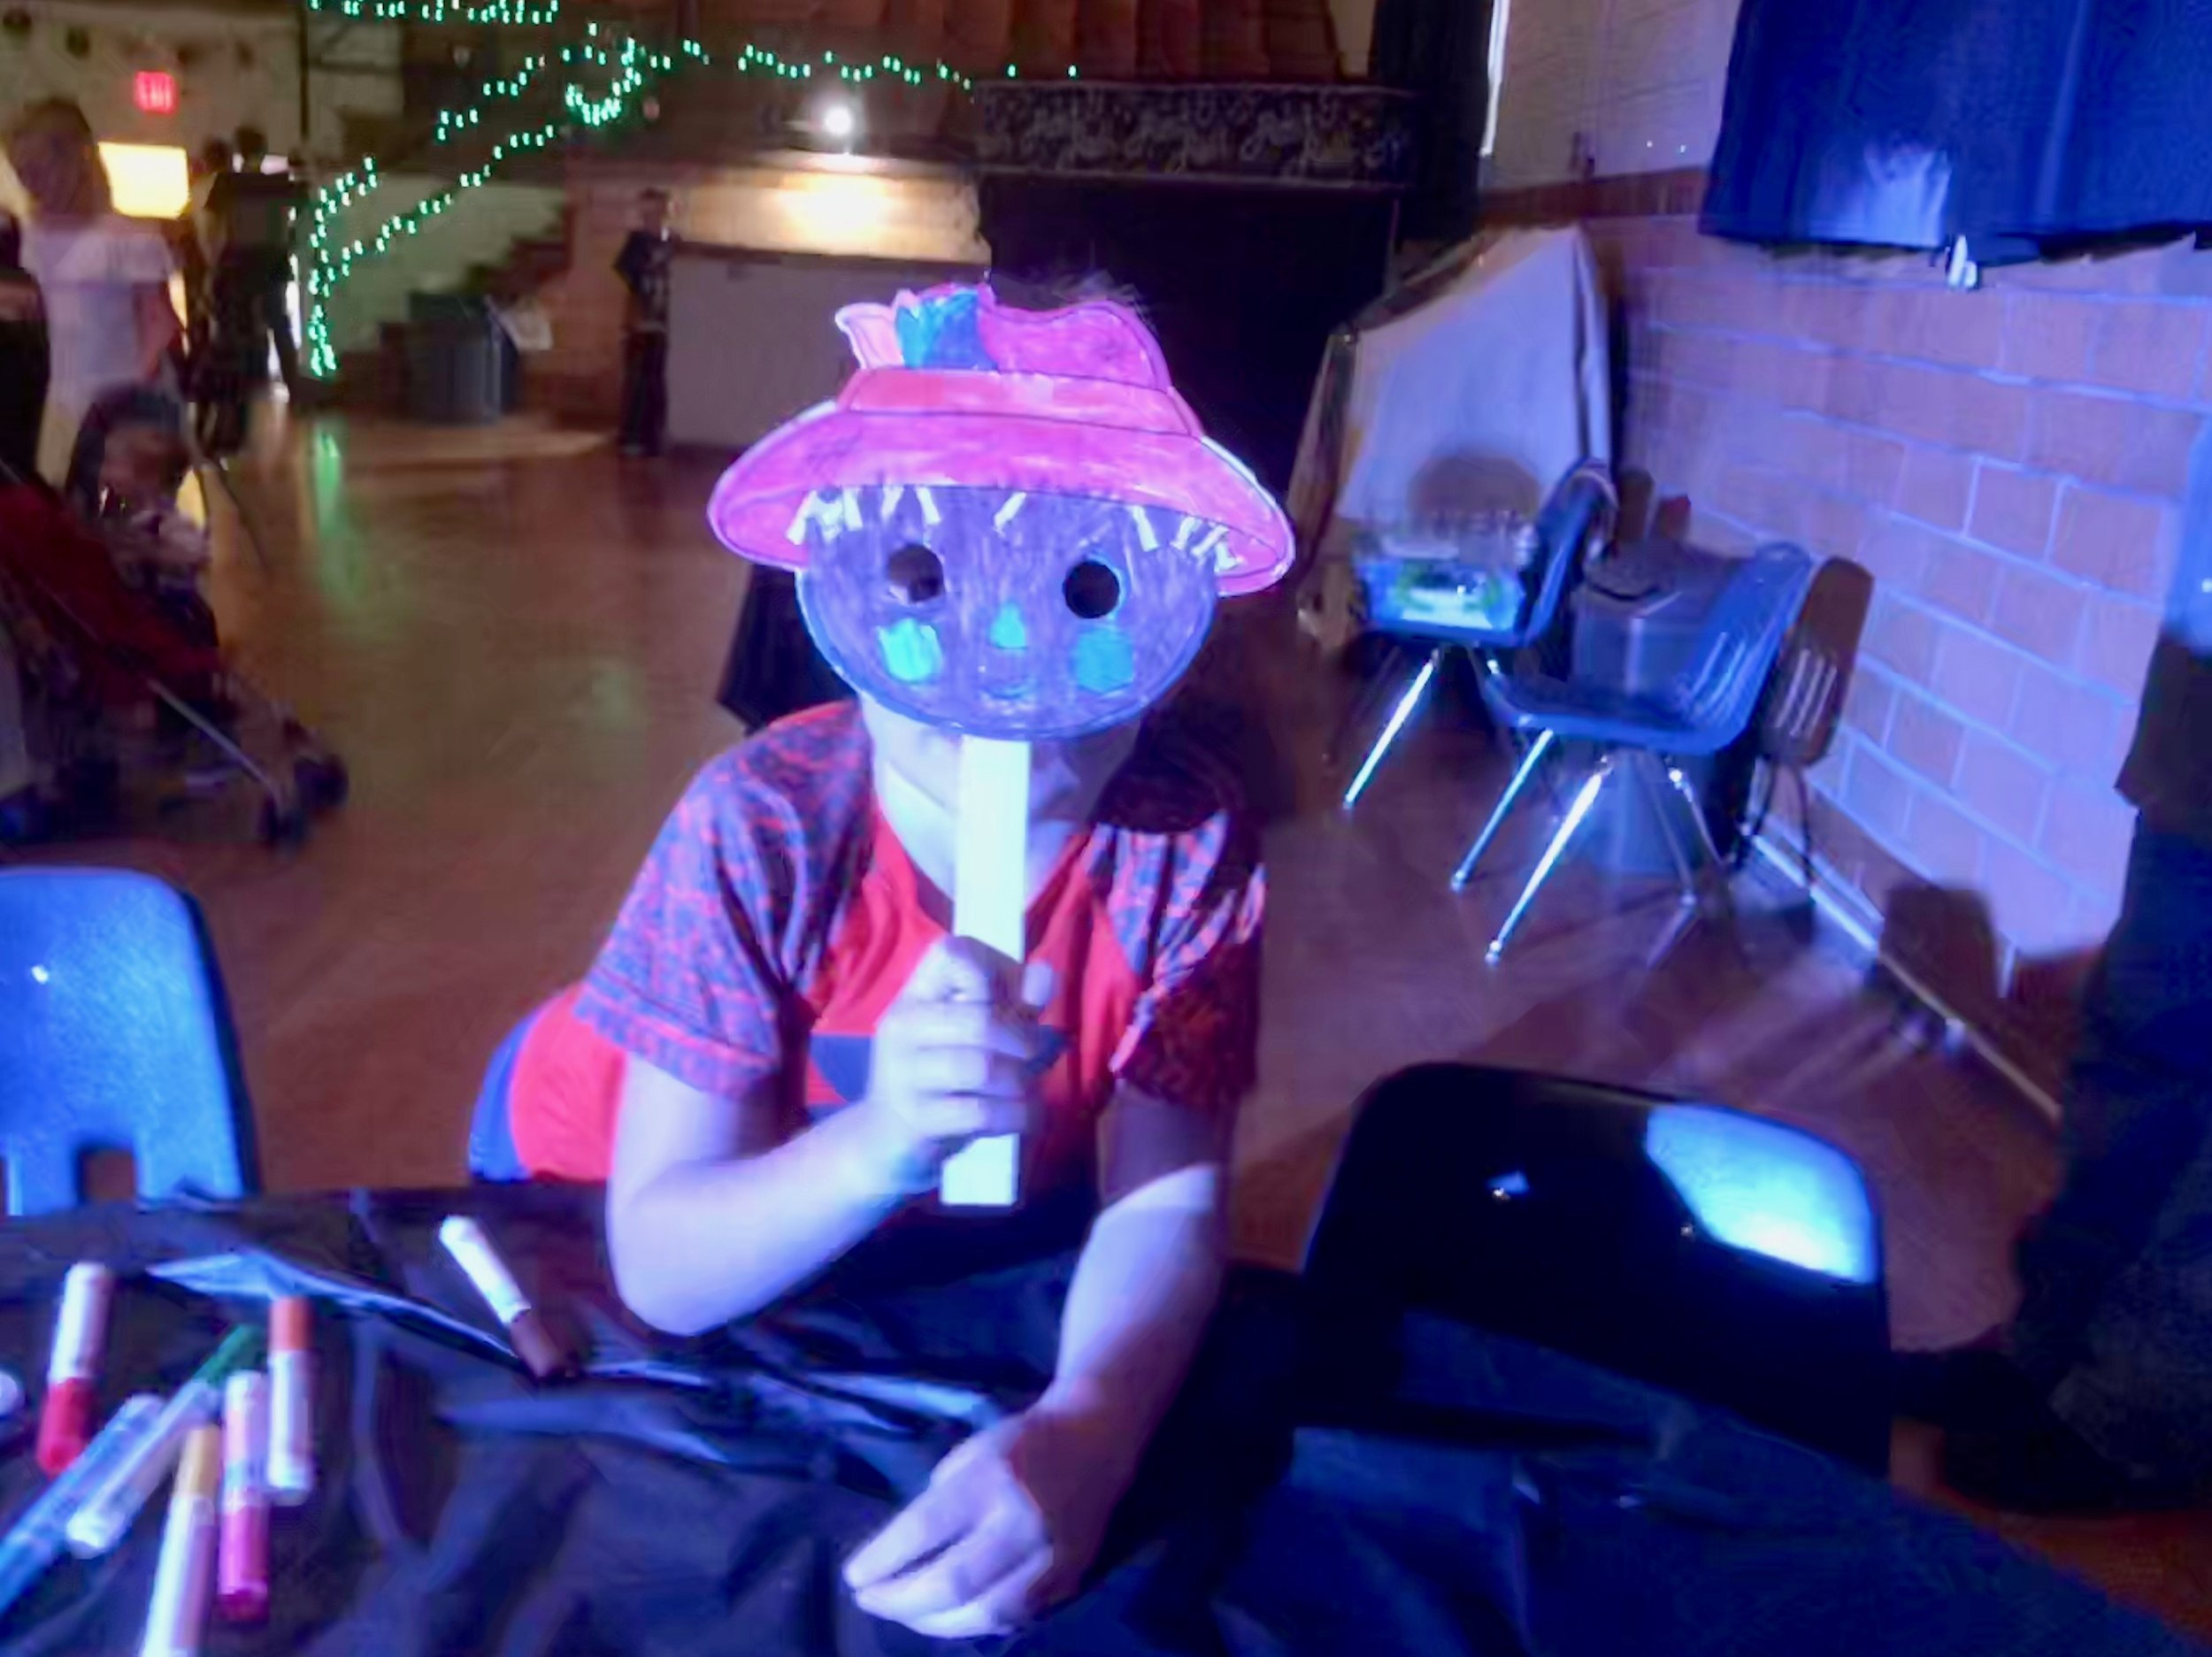 Scarecrow mask made at our children's crafts tables at the Family Sock Hop - Sept '18